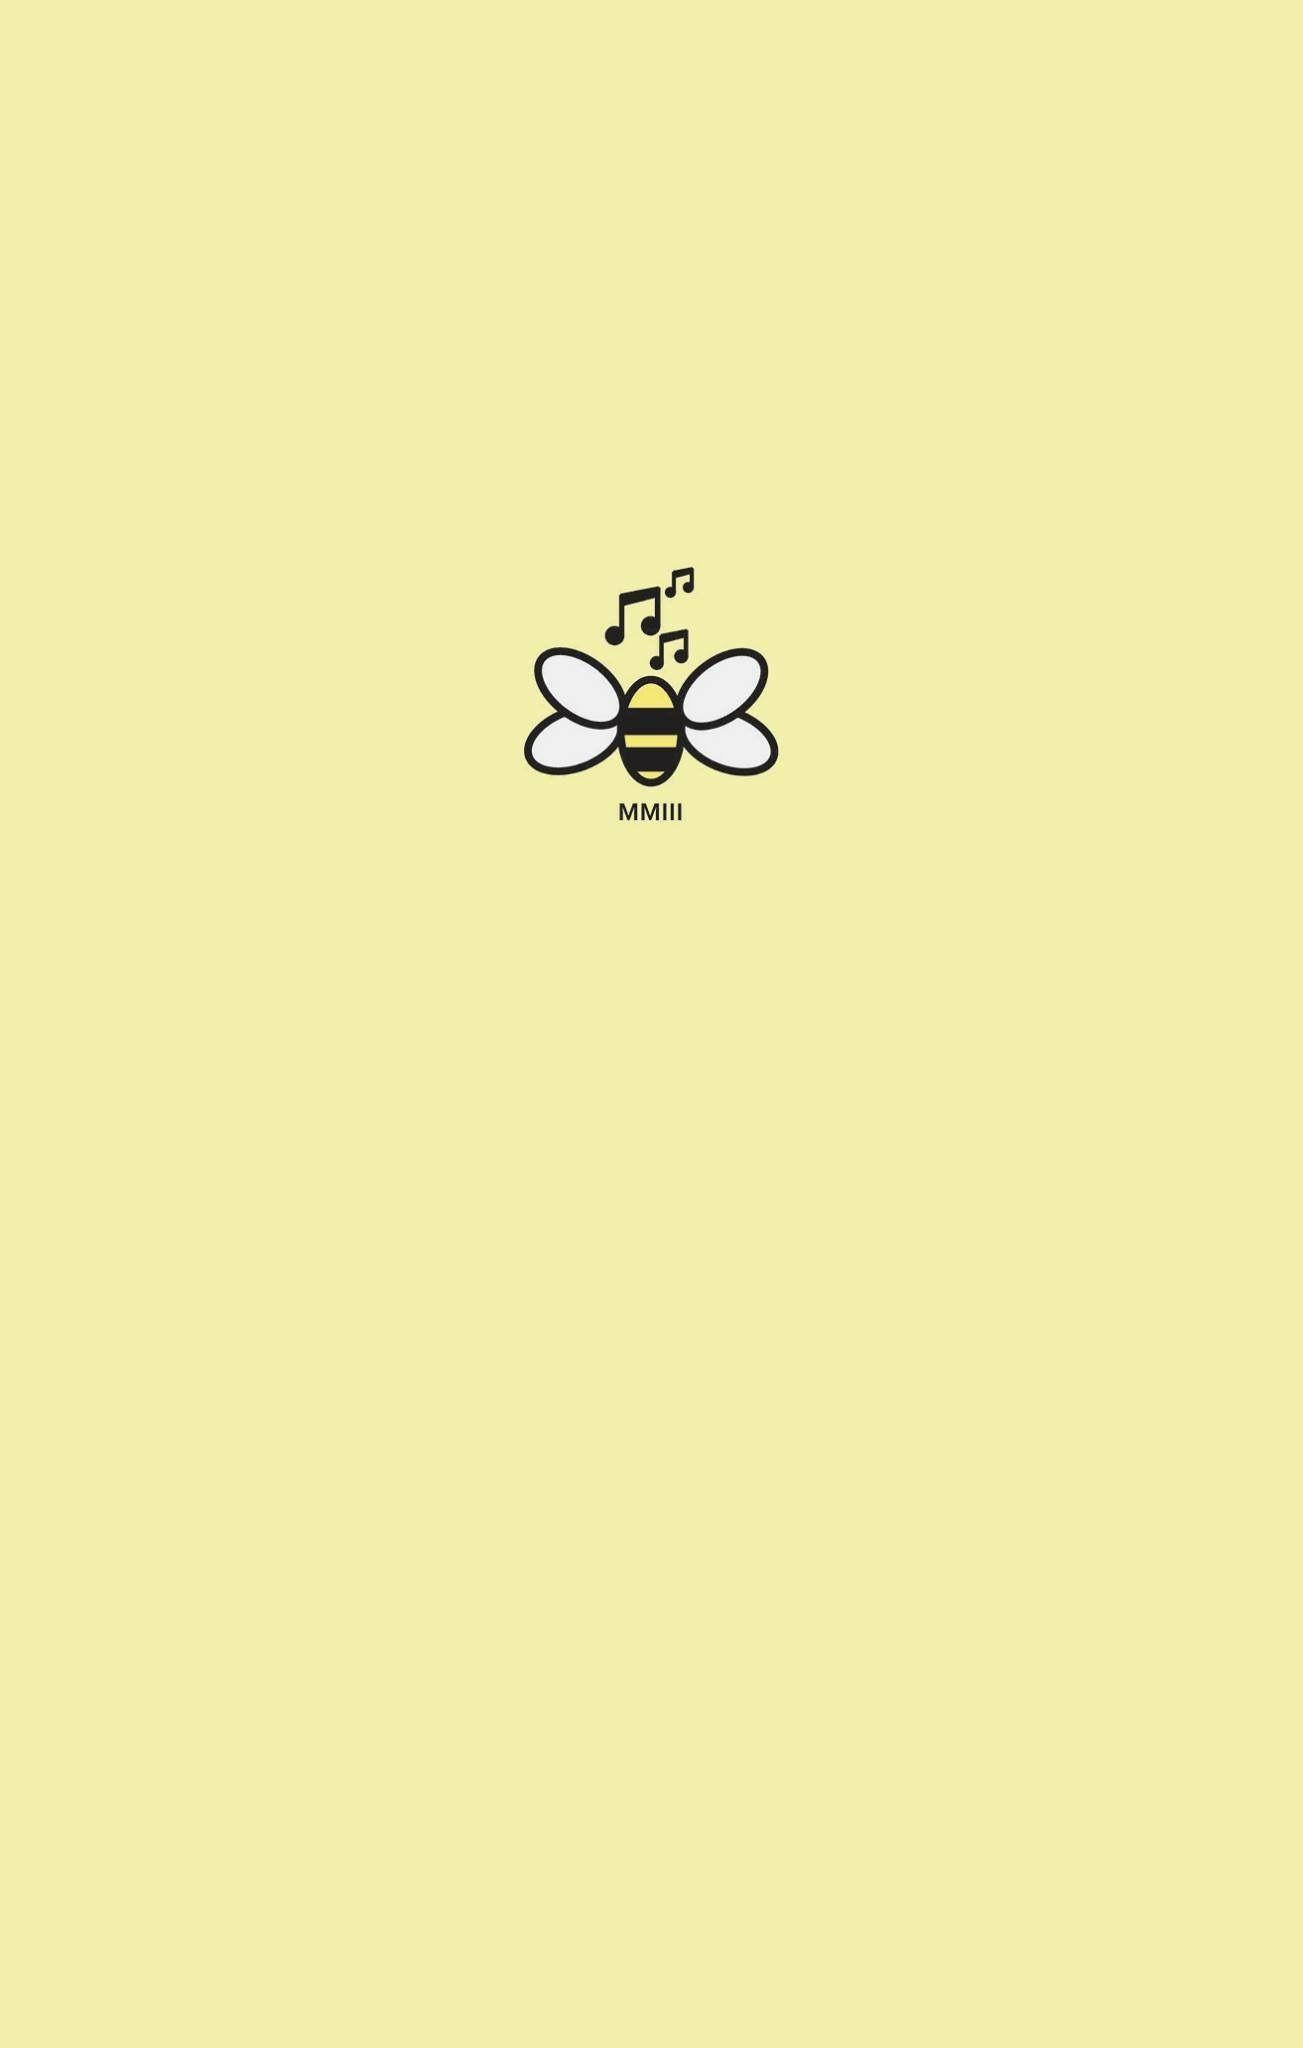 Yellow Pastel Aesthetic Wallpapers - Wallpaper Cave